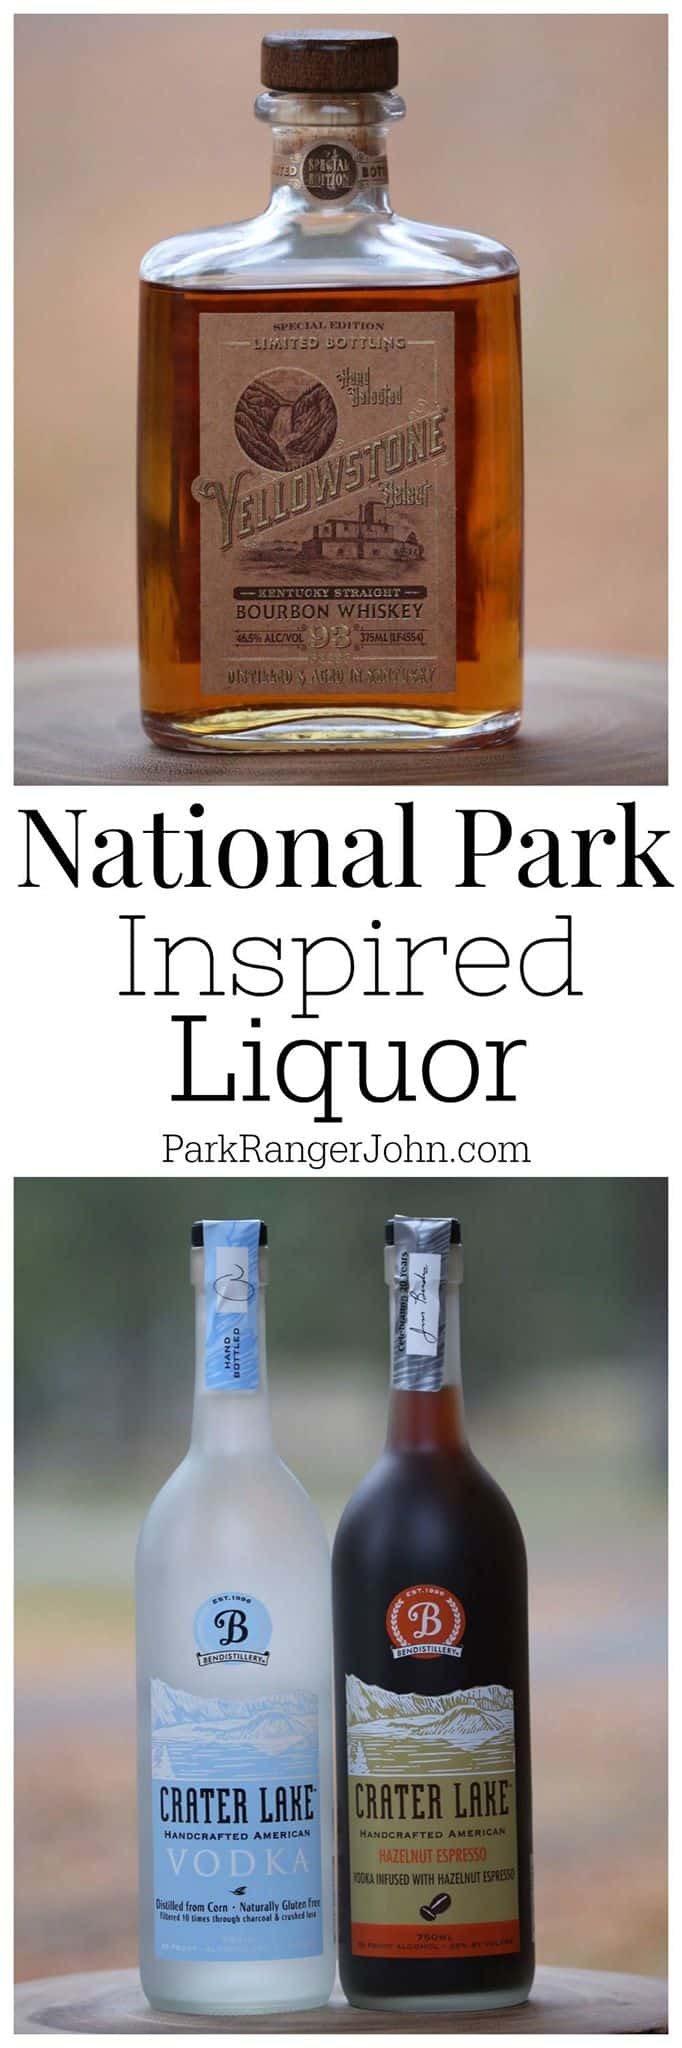 Spirits inspired by the U.S. National Parks make great gifts. You can also take them home to put into your collection or to show off their beautiful labels and bottles on a centerpiece. You can also learn how to make your favorite alcoholic beverages while bringing back memories of your favorite parks! #spirits #cocktails #whiskey #vodka